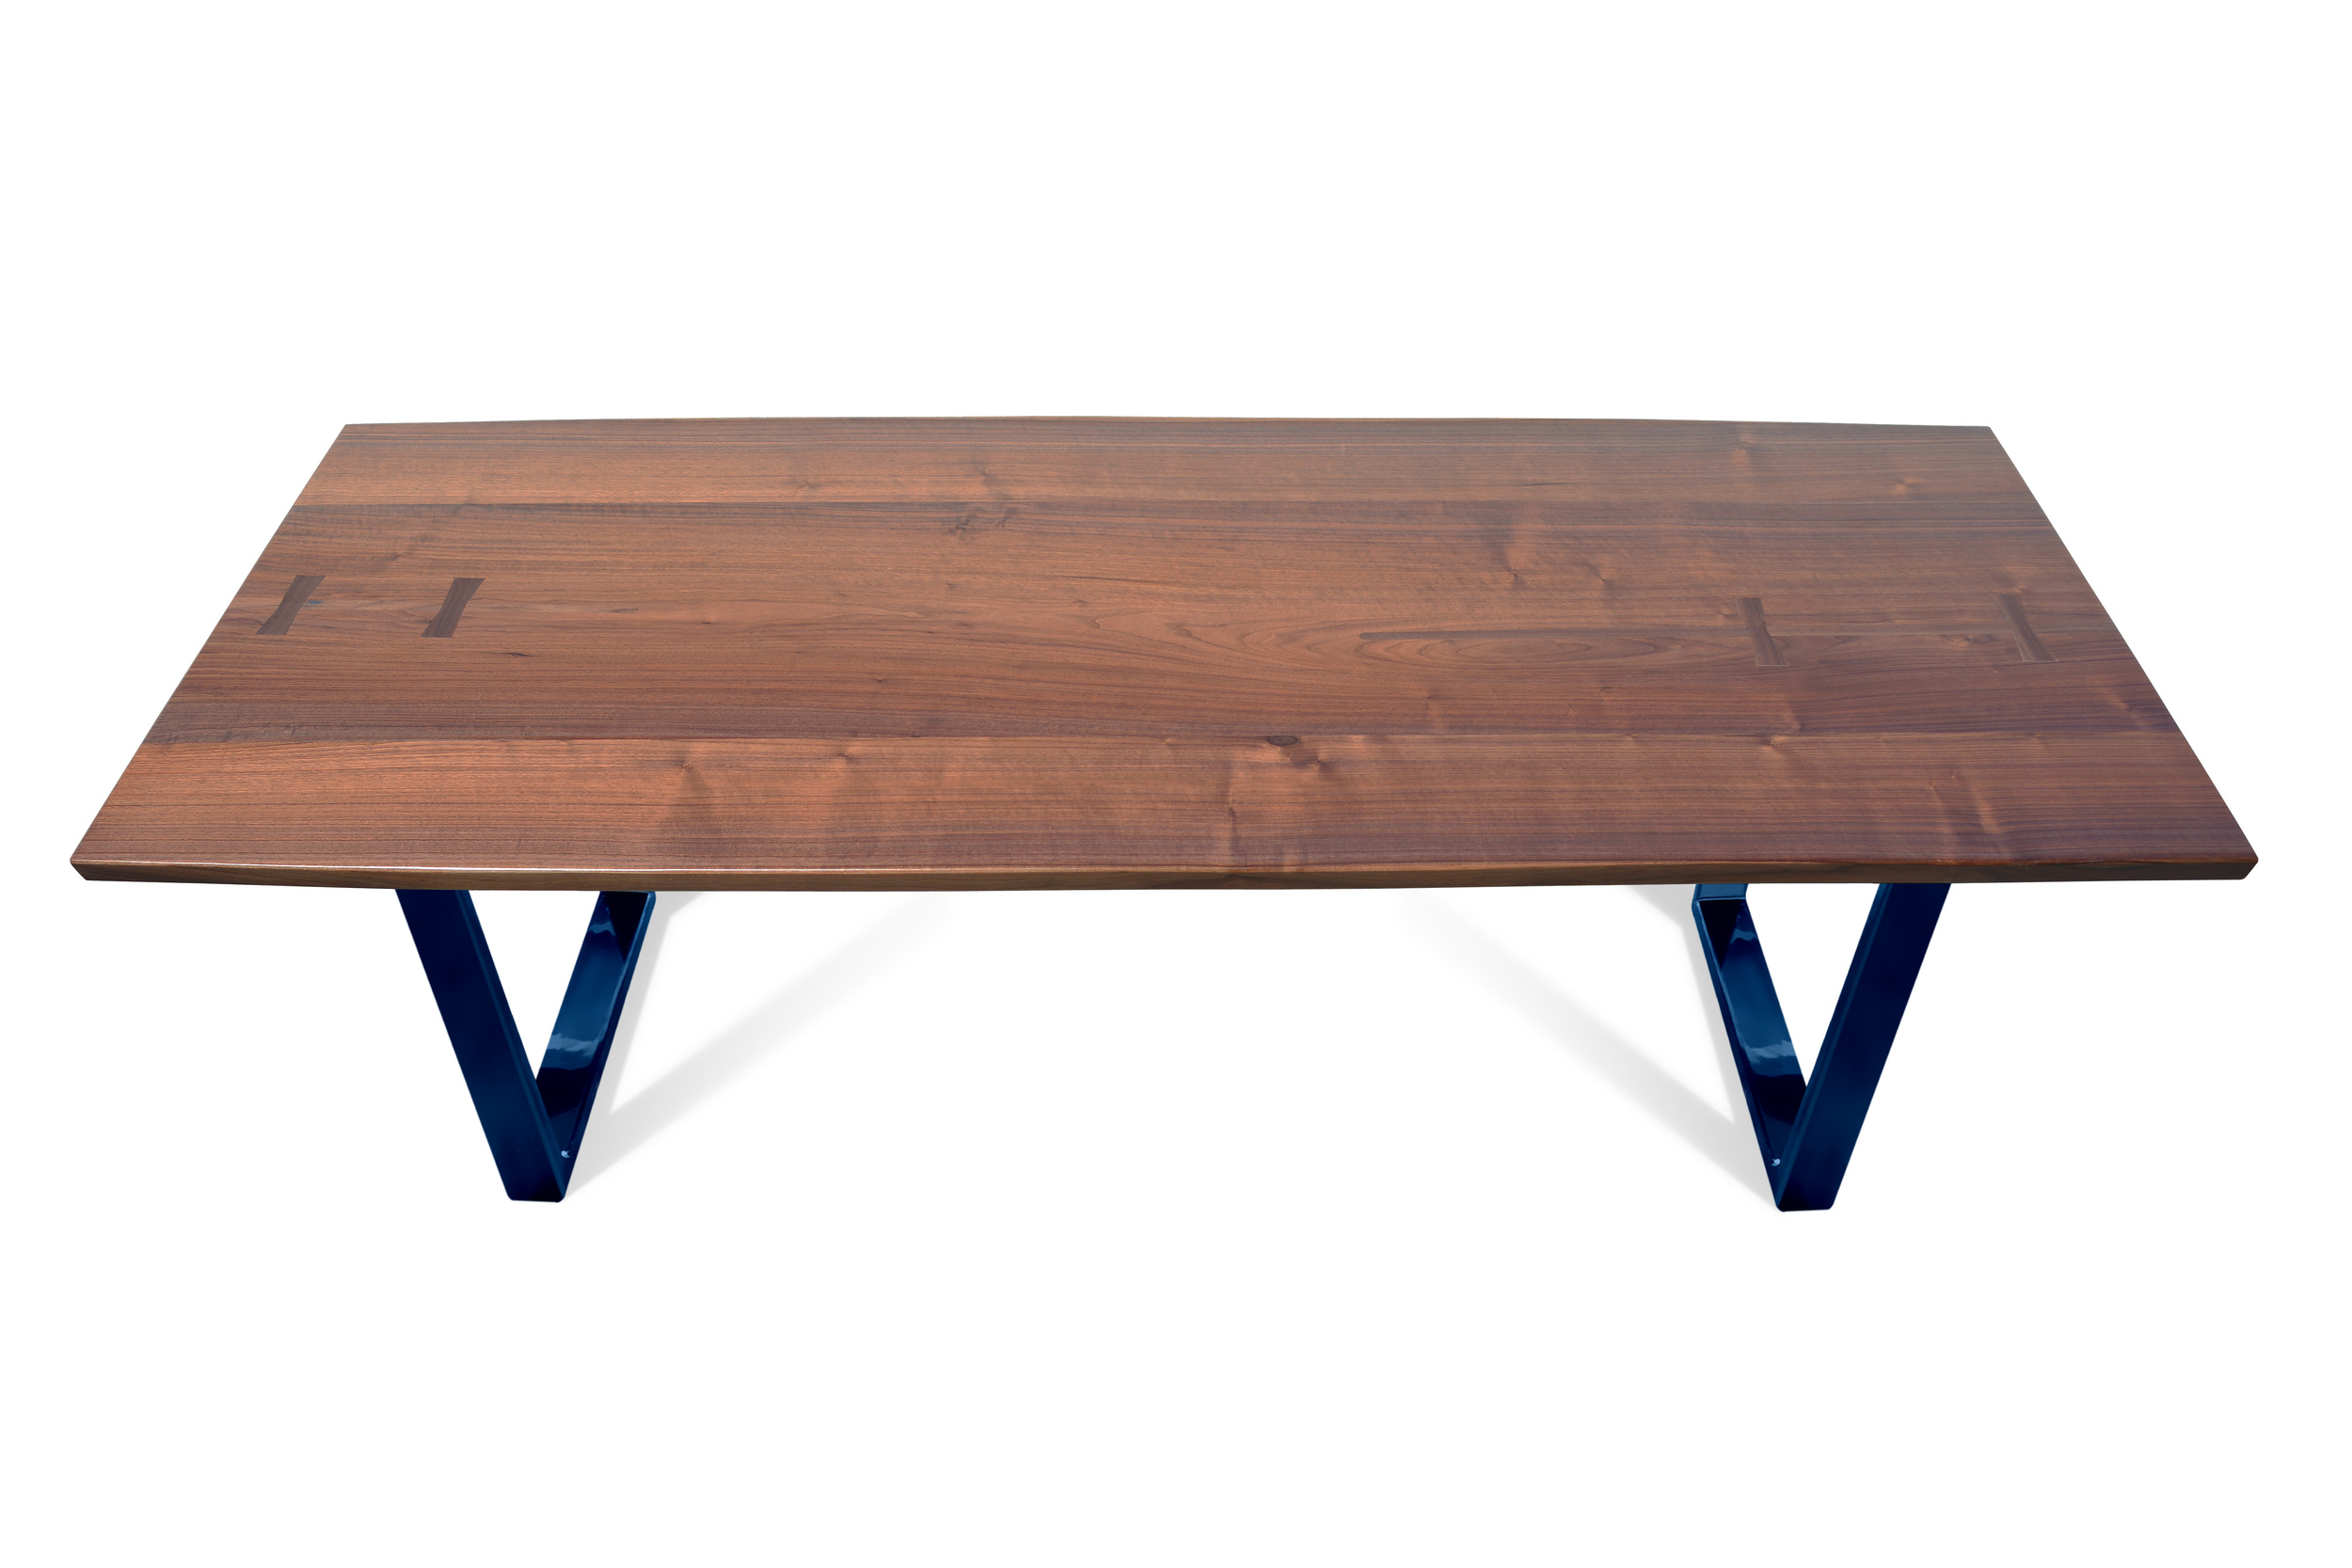 Etz & Steel Viceroy Live Edge Table Midnight Navy Base 1.jpg